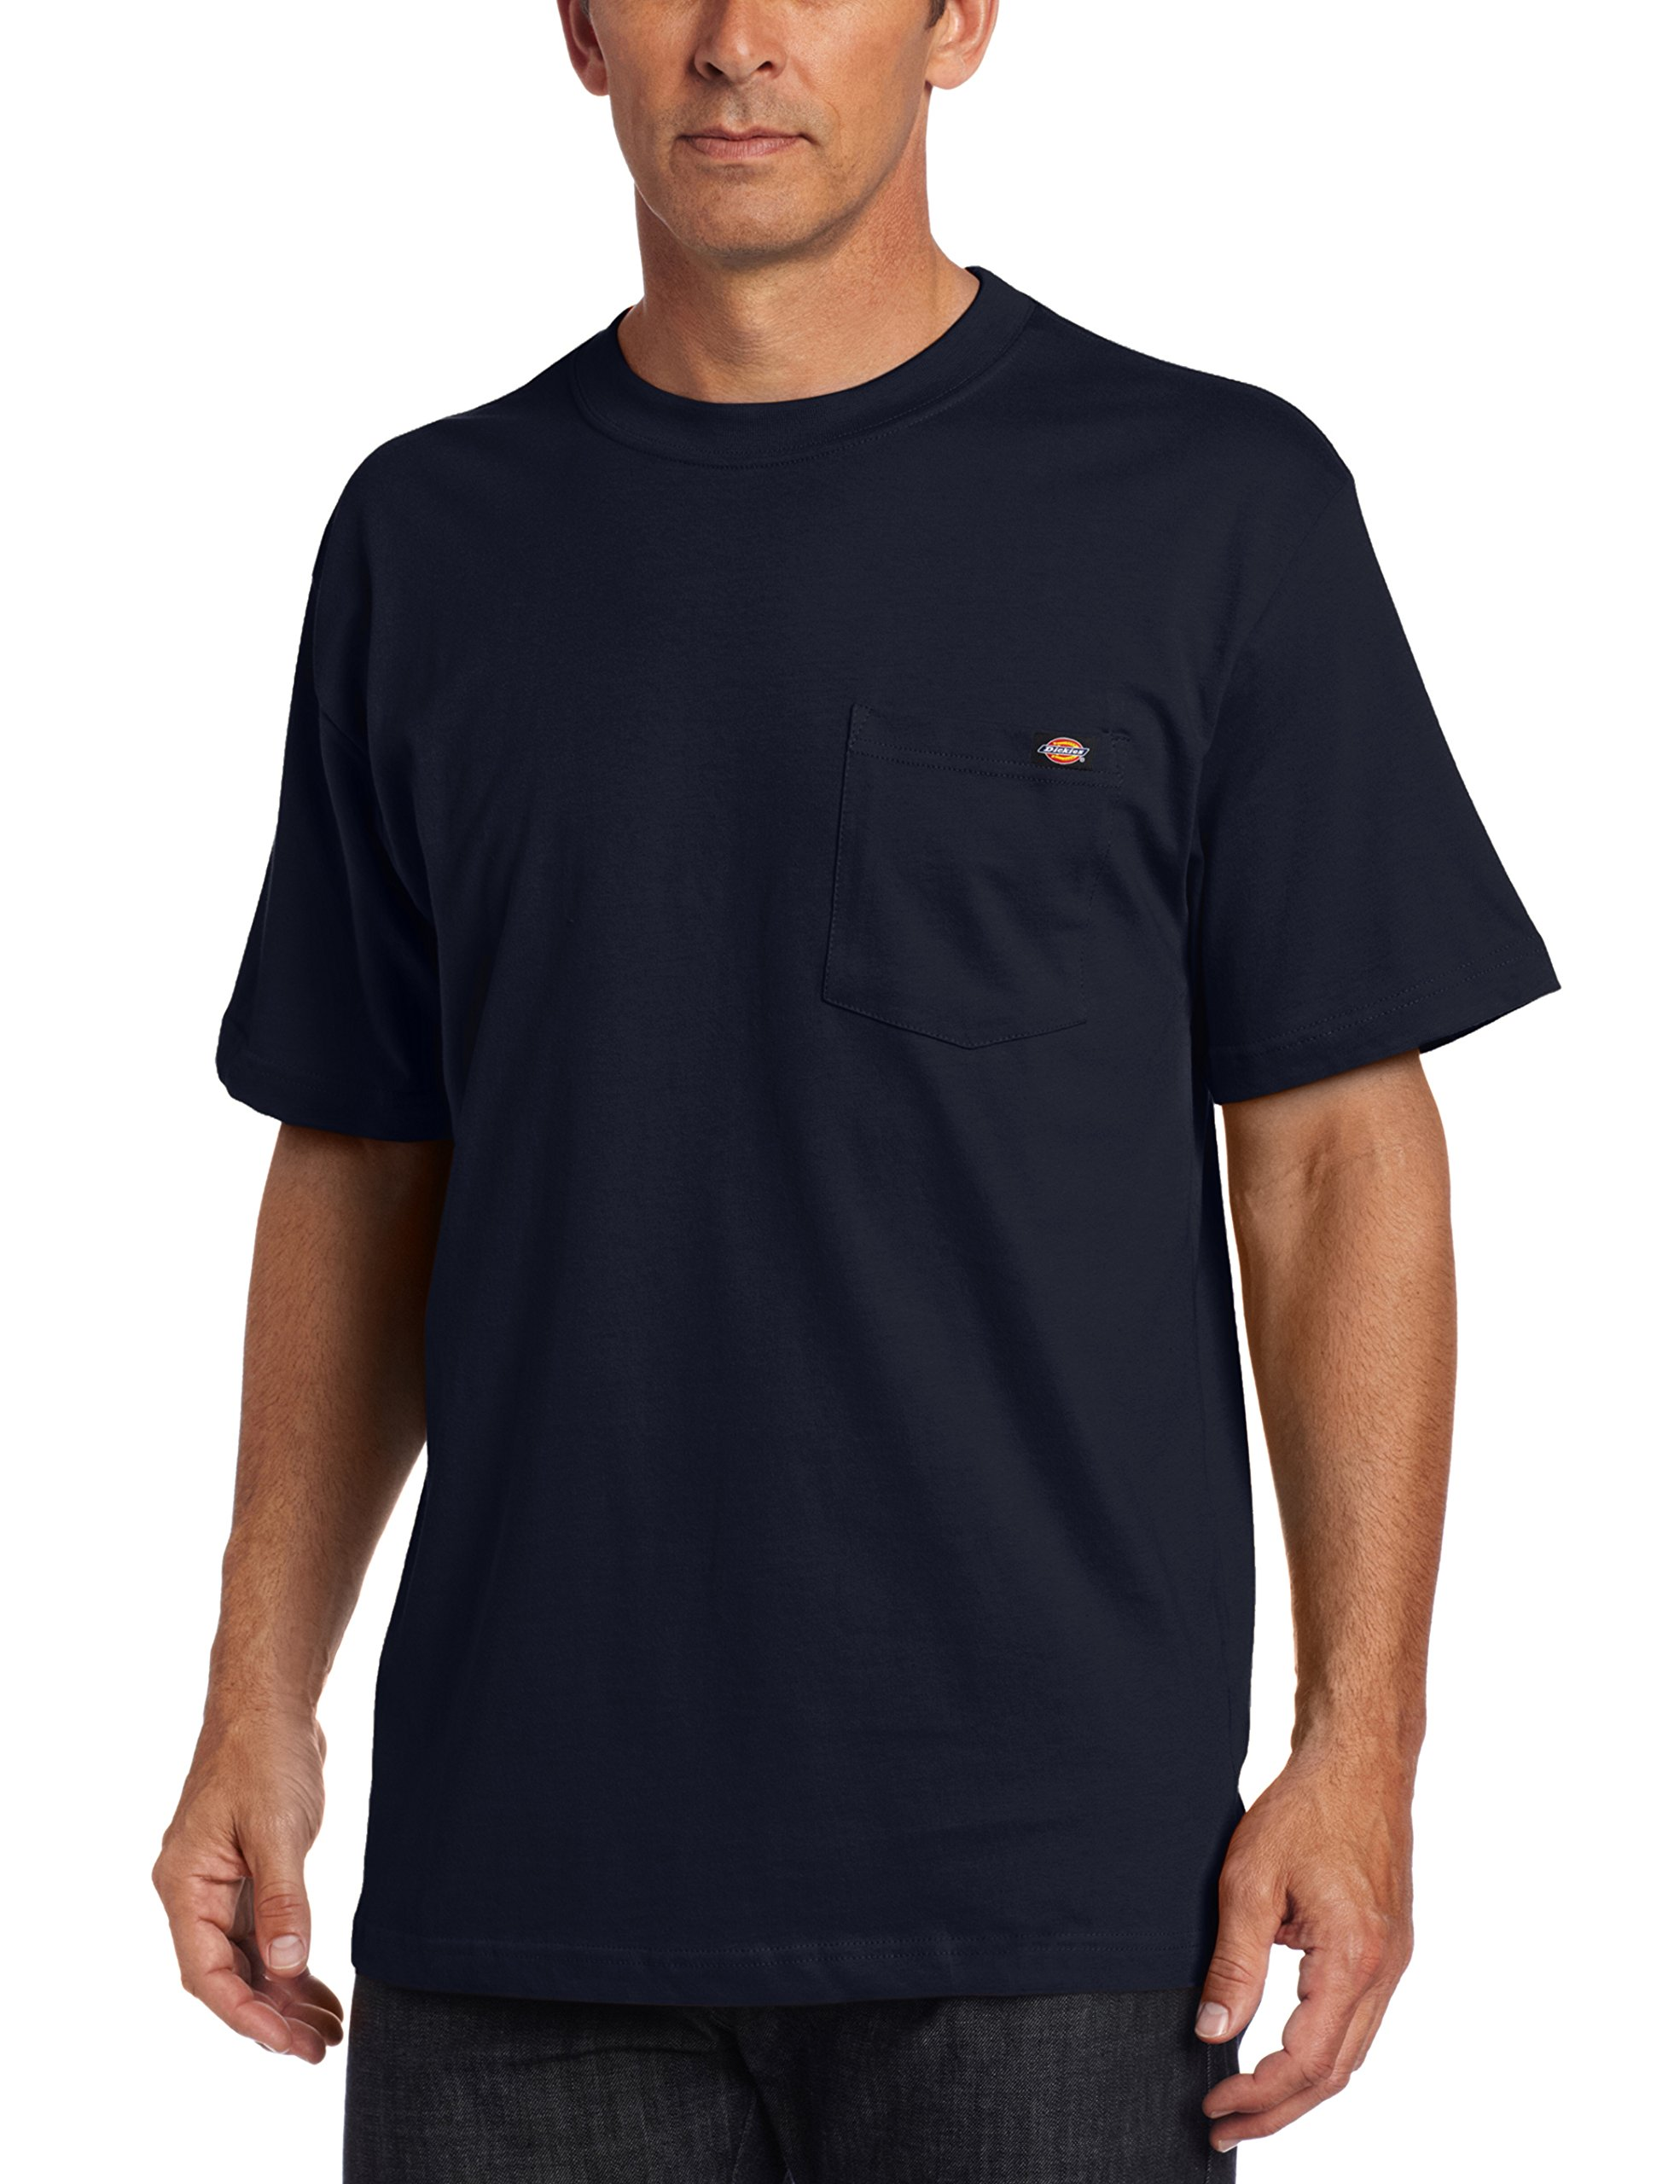 Dickies Men's Big Short-Sleeve Pocket T-Shirt, Dark